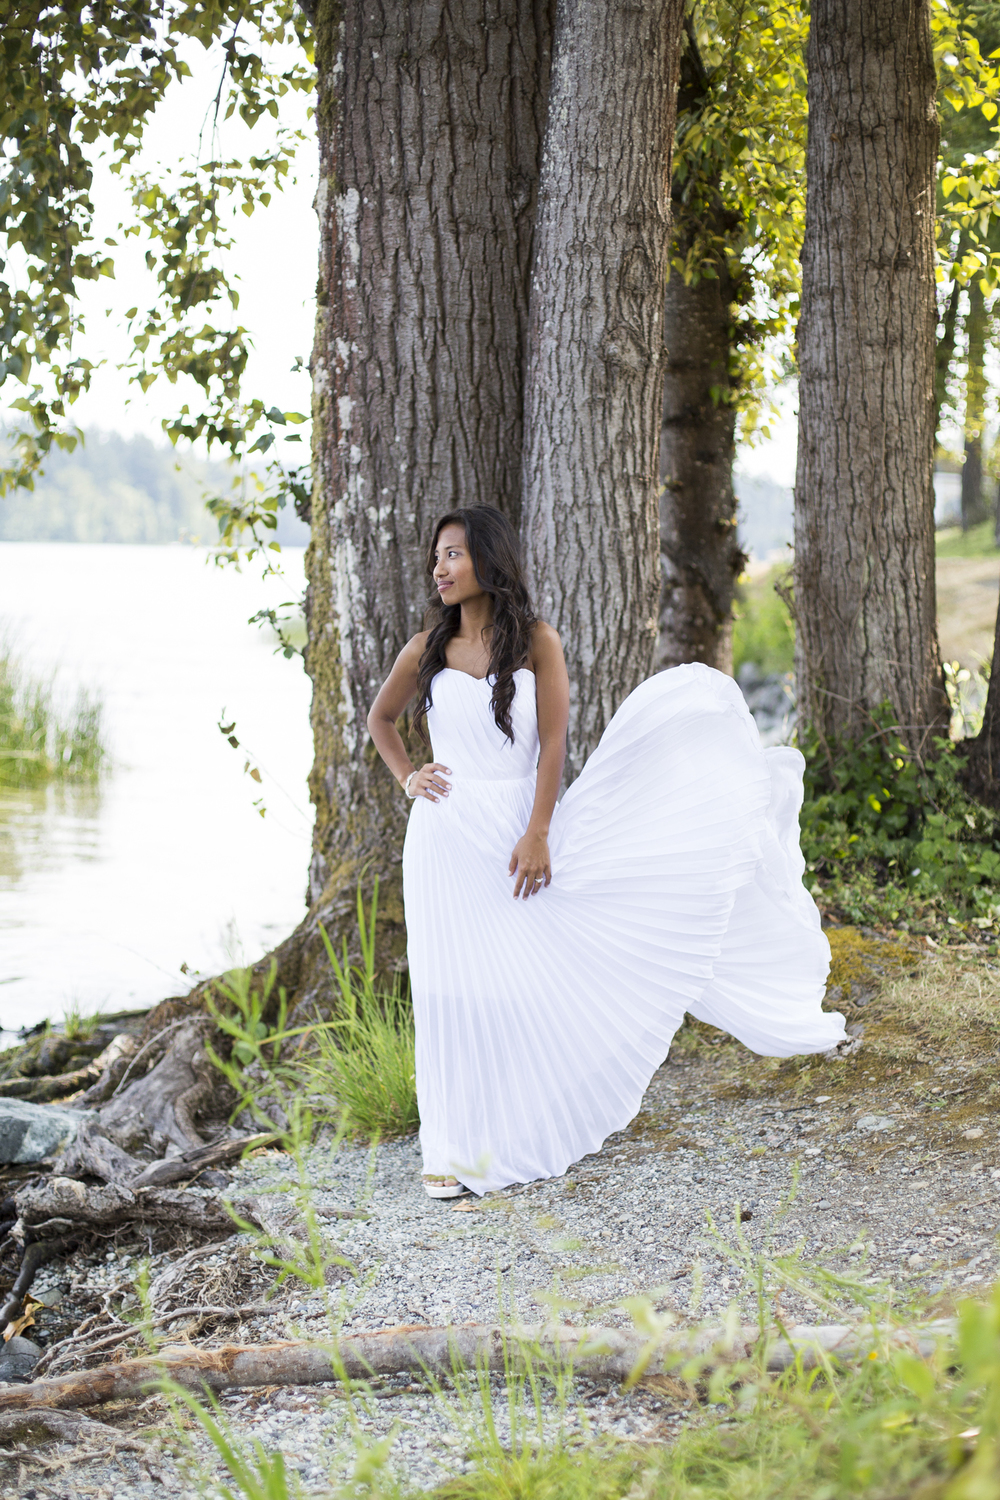 Jaeda-Reed-Wedding-MD-Wind-Dress-Flowing.jpg